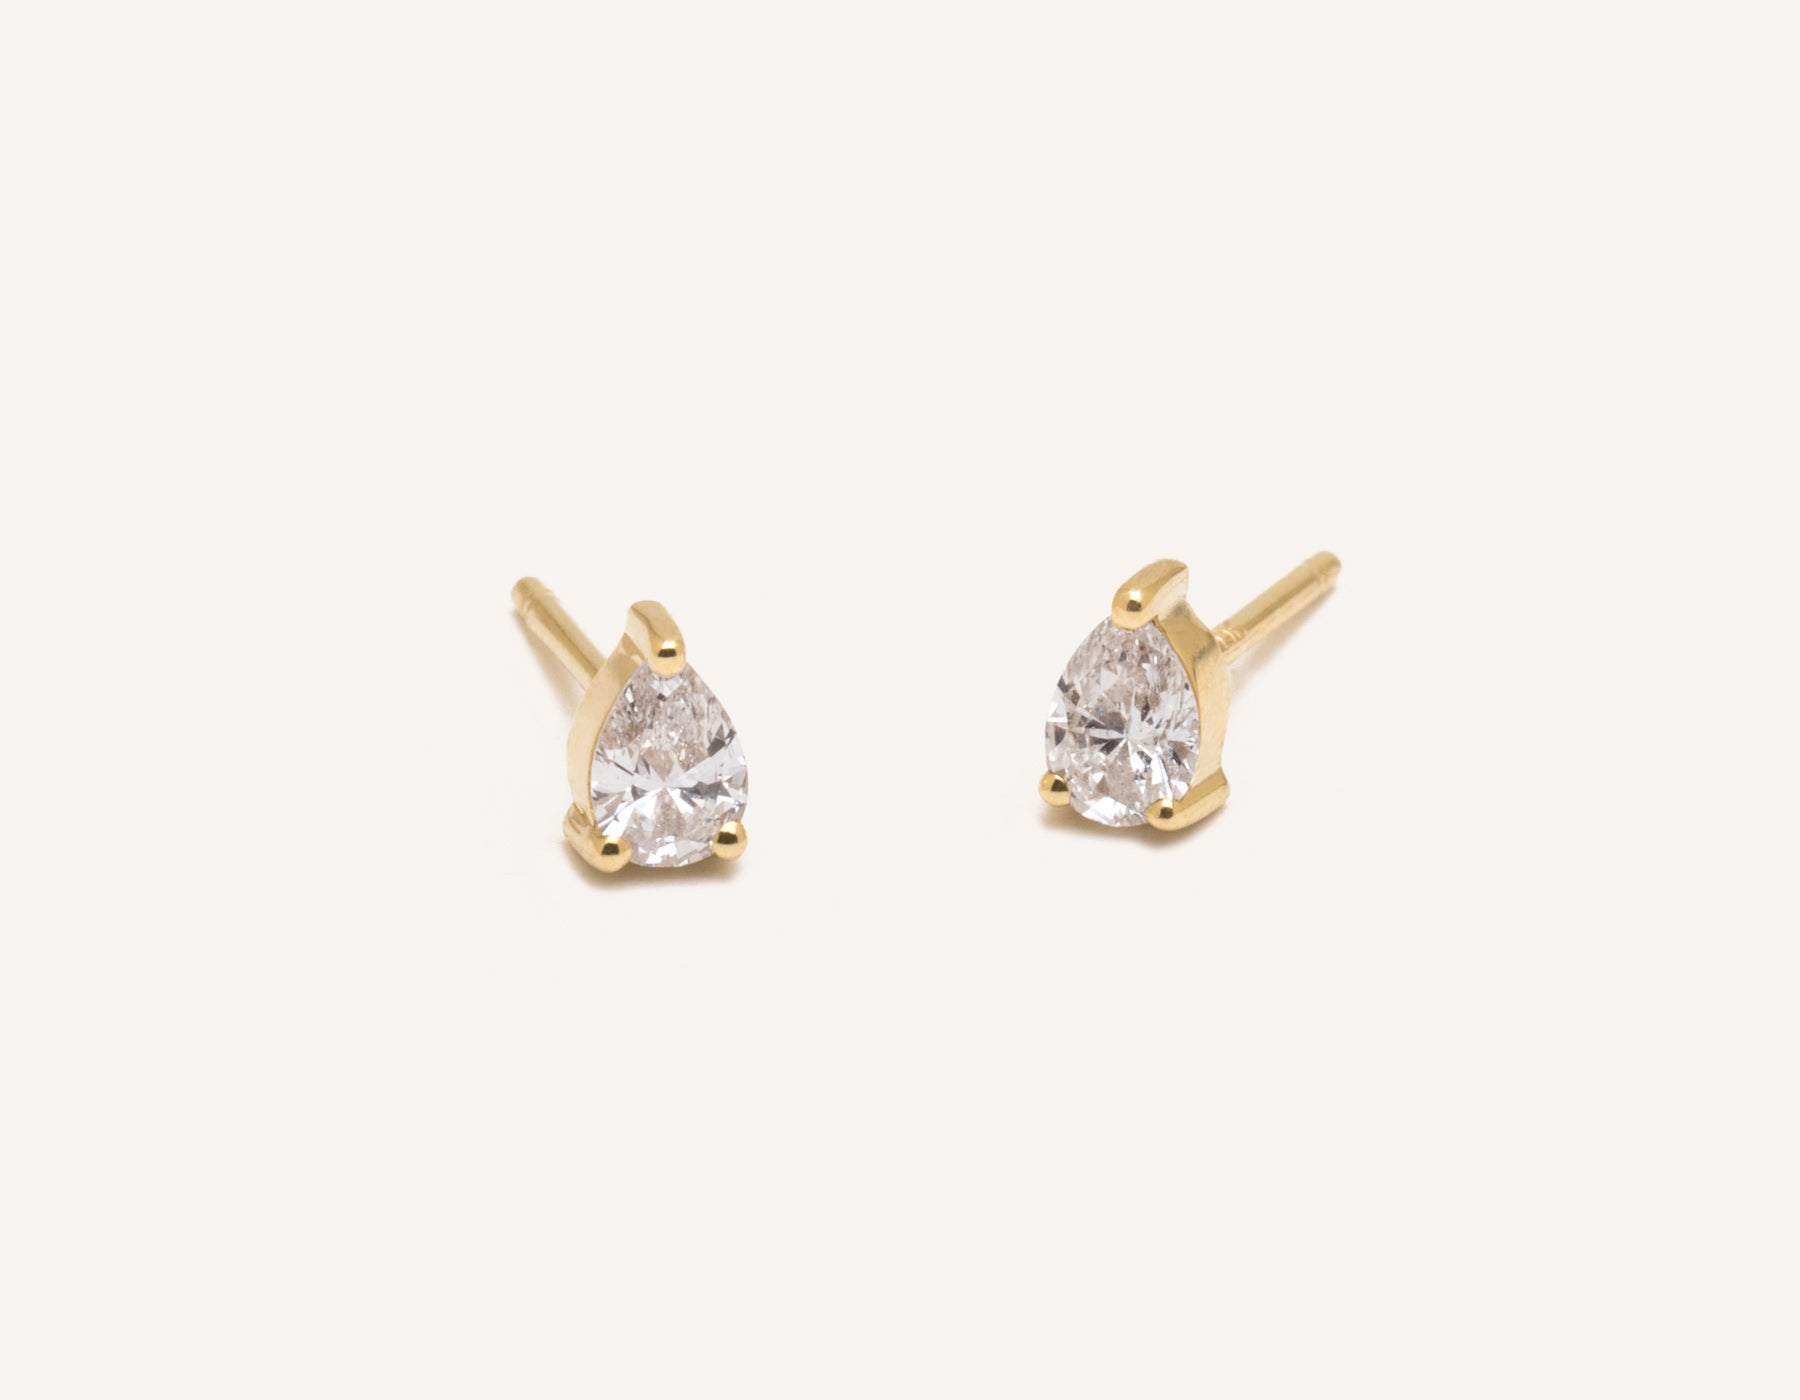 Vrai & Oro 14k pear diamond earrings simple classic stud post, 14K Yellow Gold